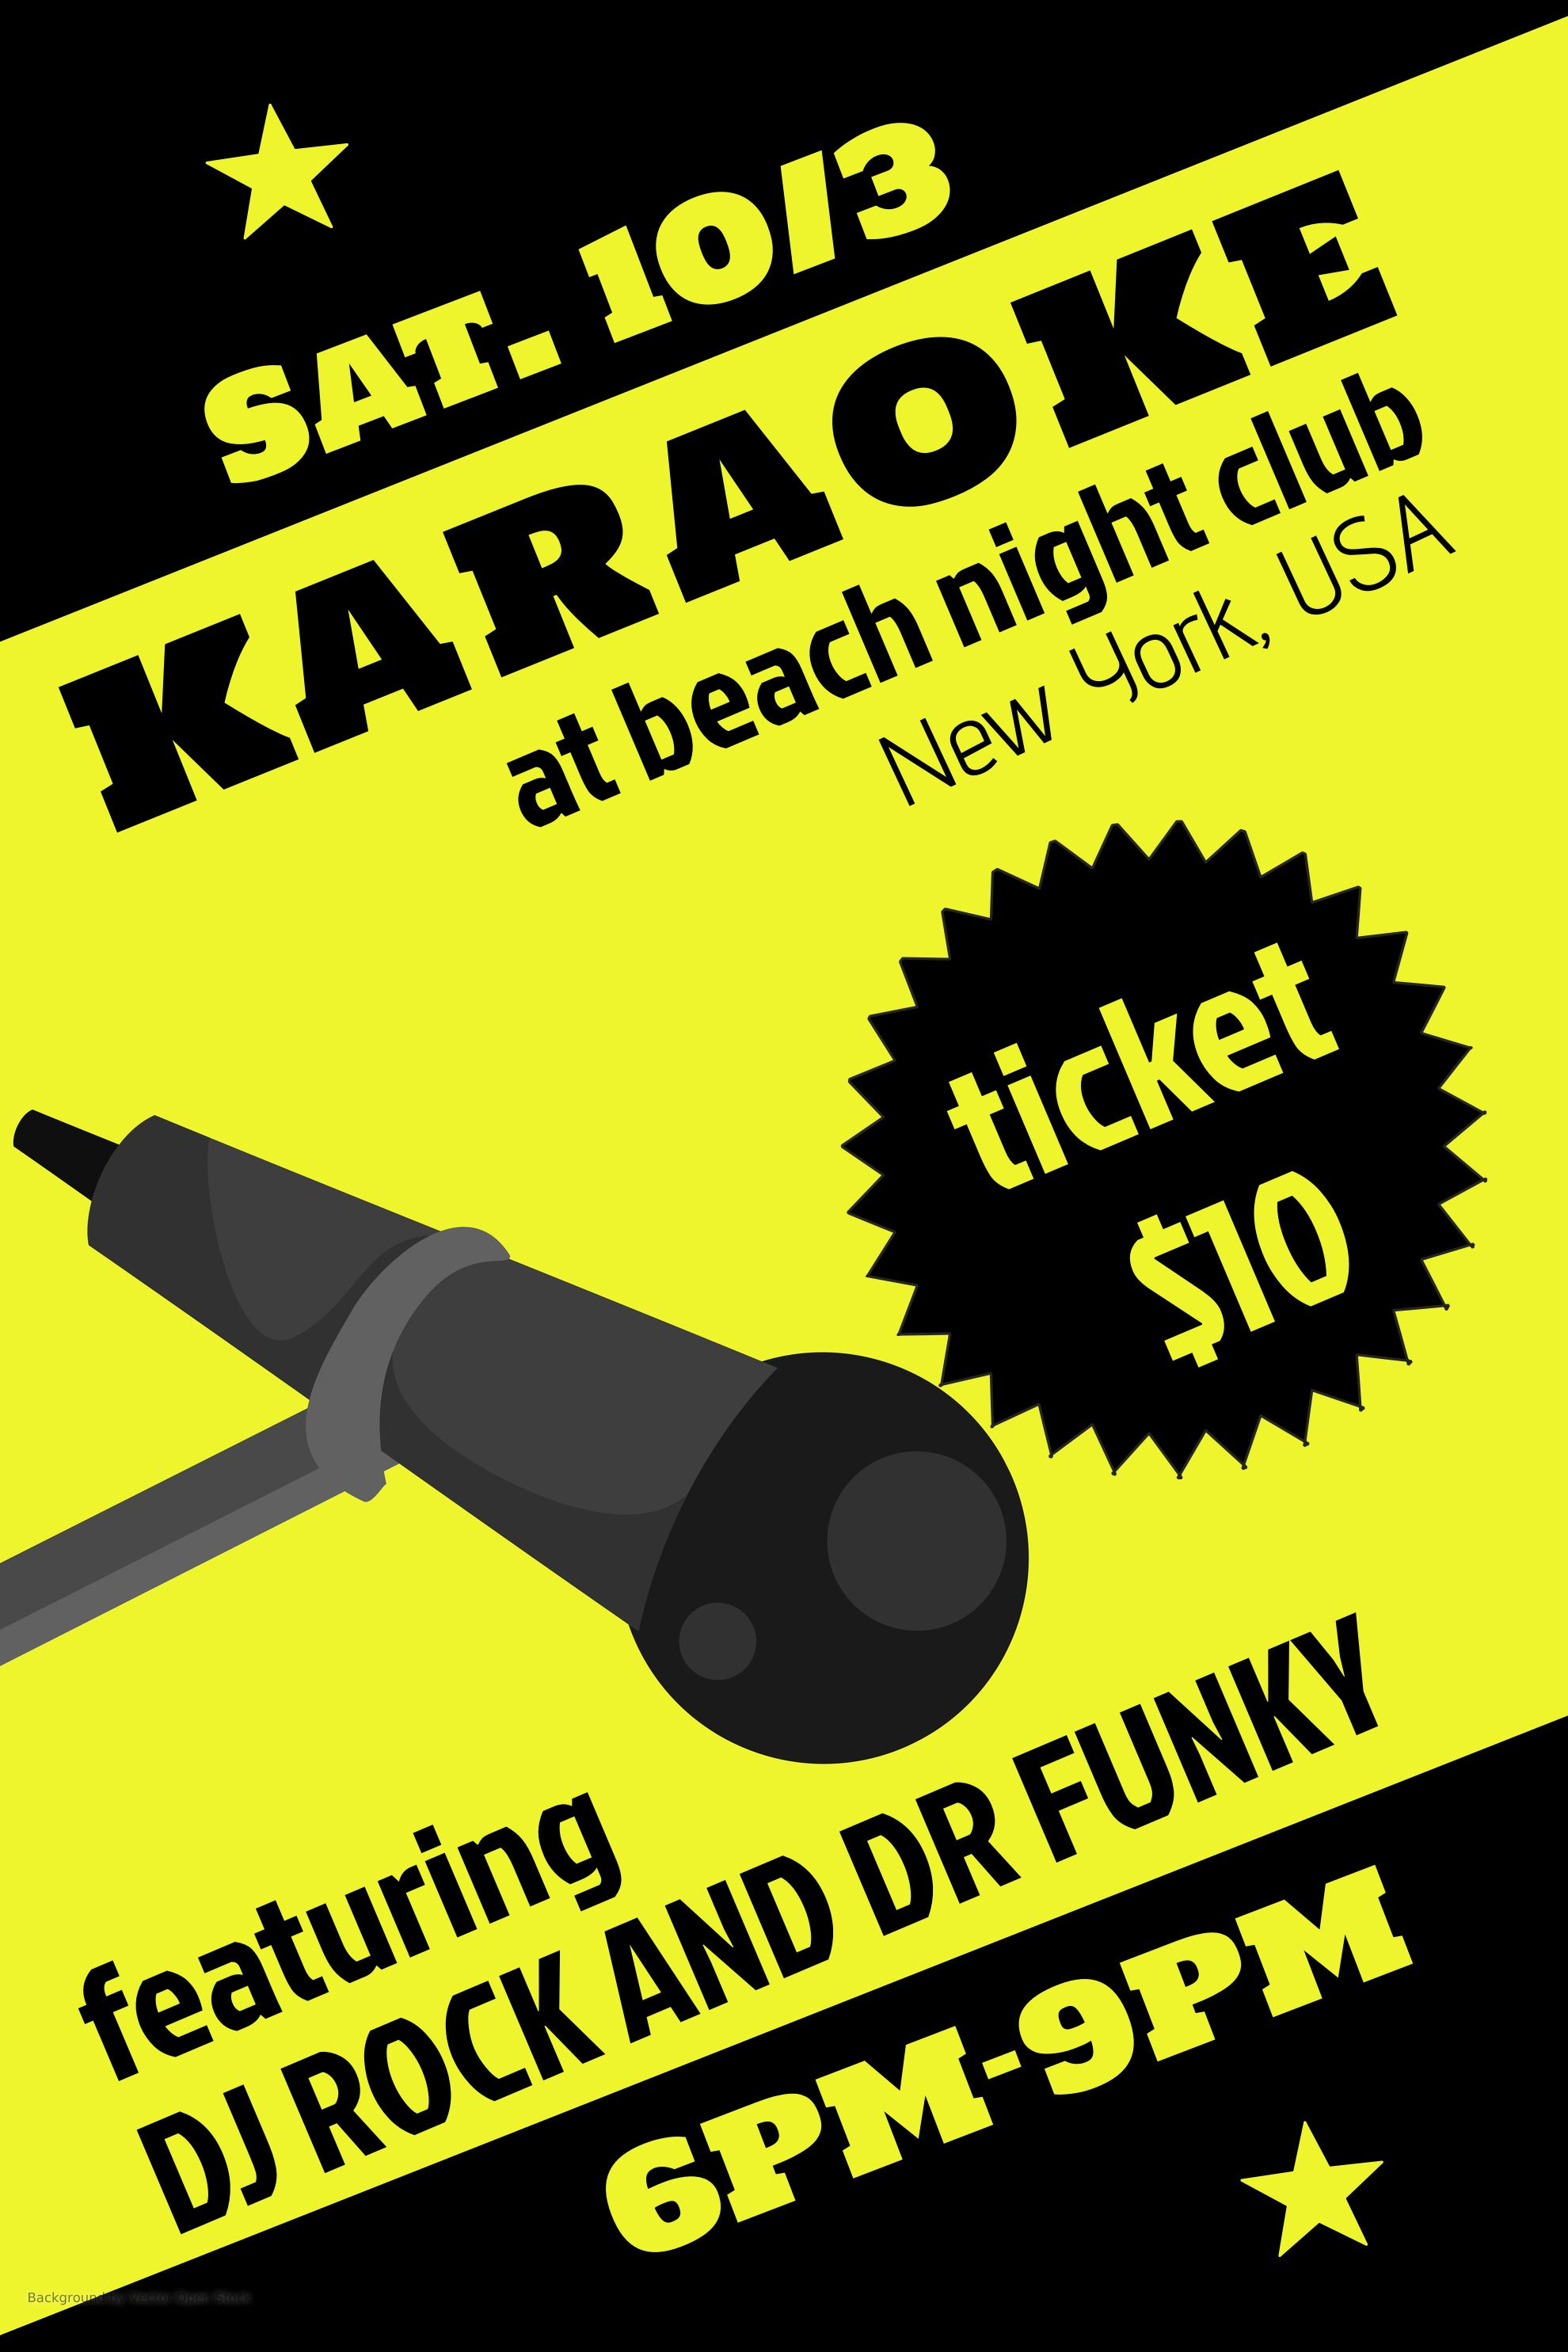 Poster design maker - Karaoke Party Night Flyer Design Template Click To Customize